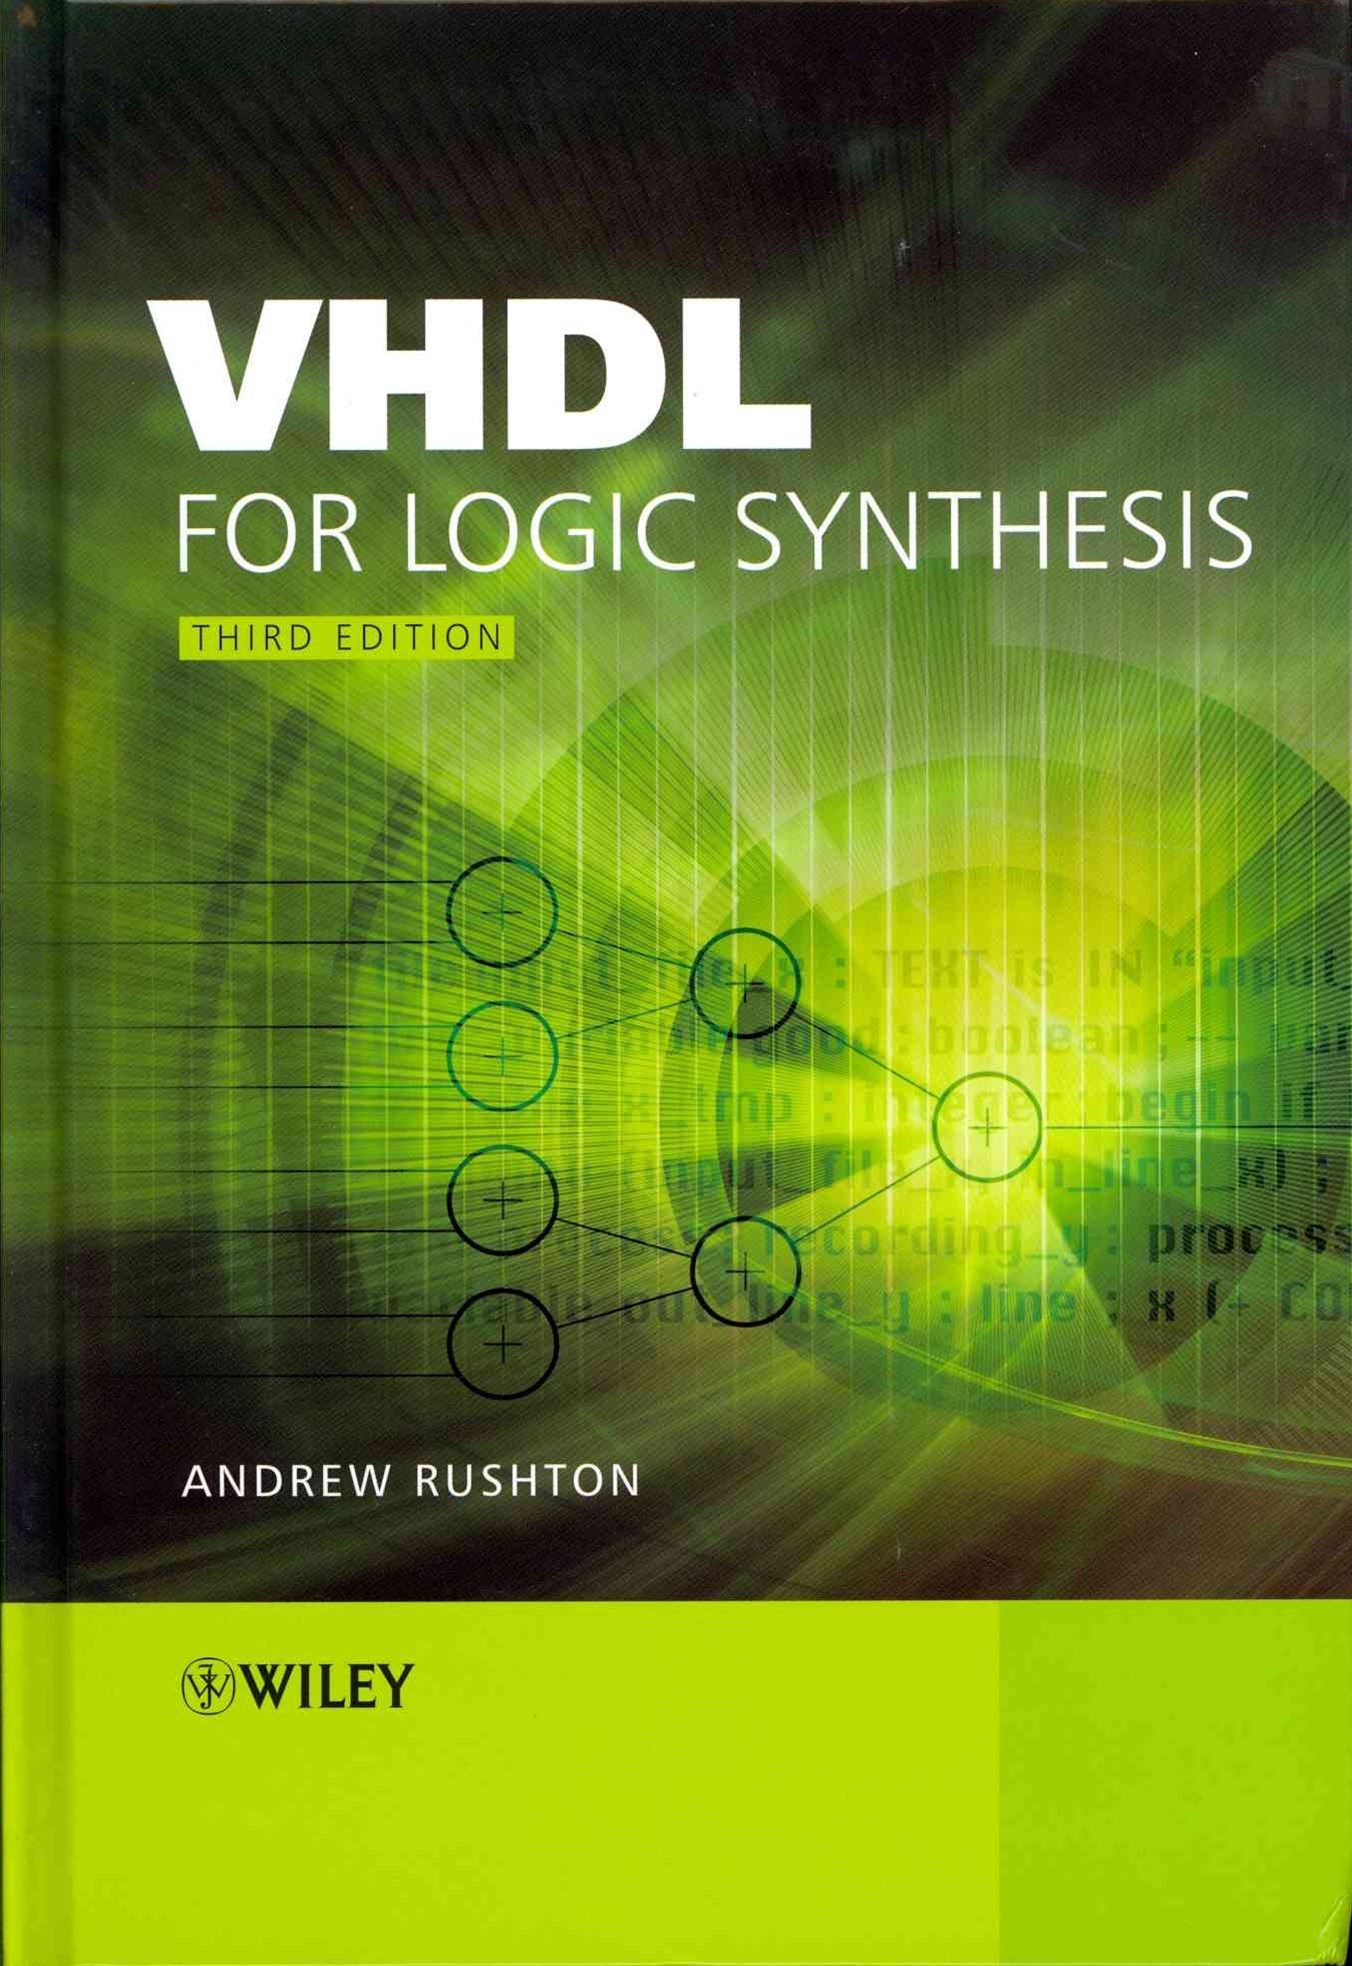 Vhdl for Logic Synthesis - 3E